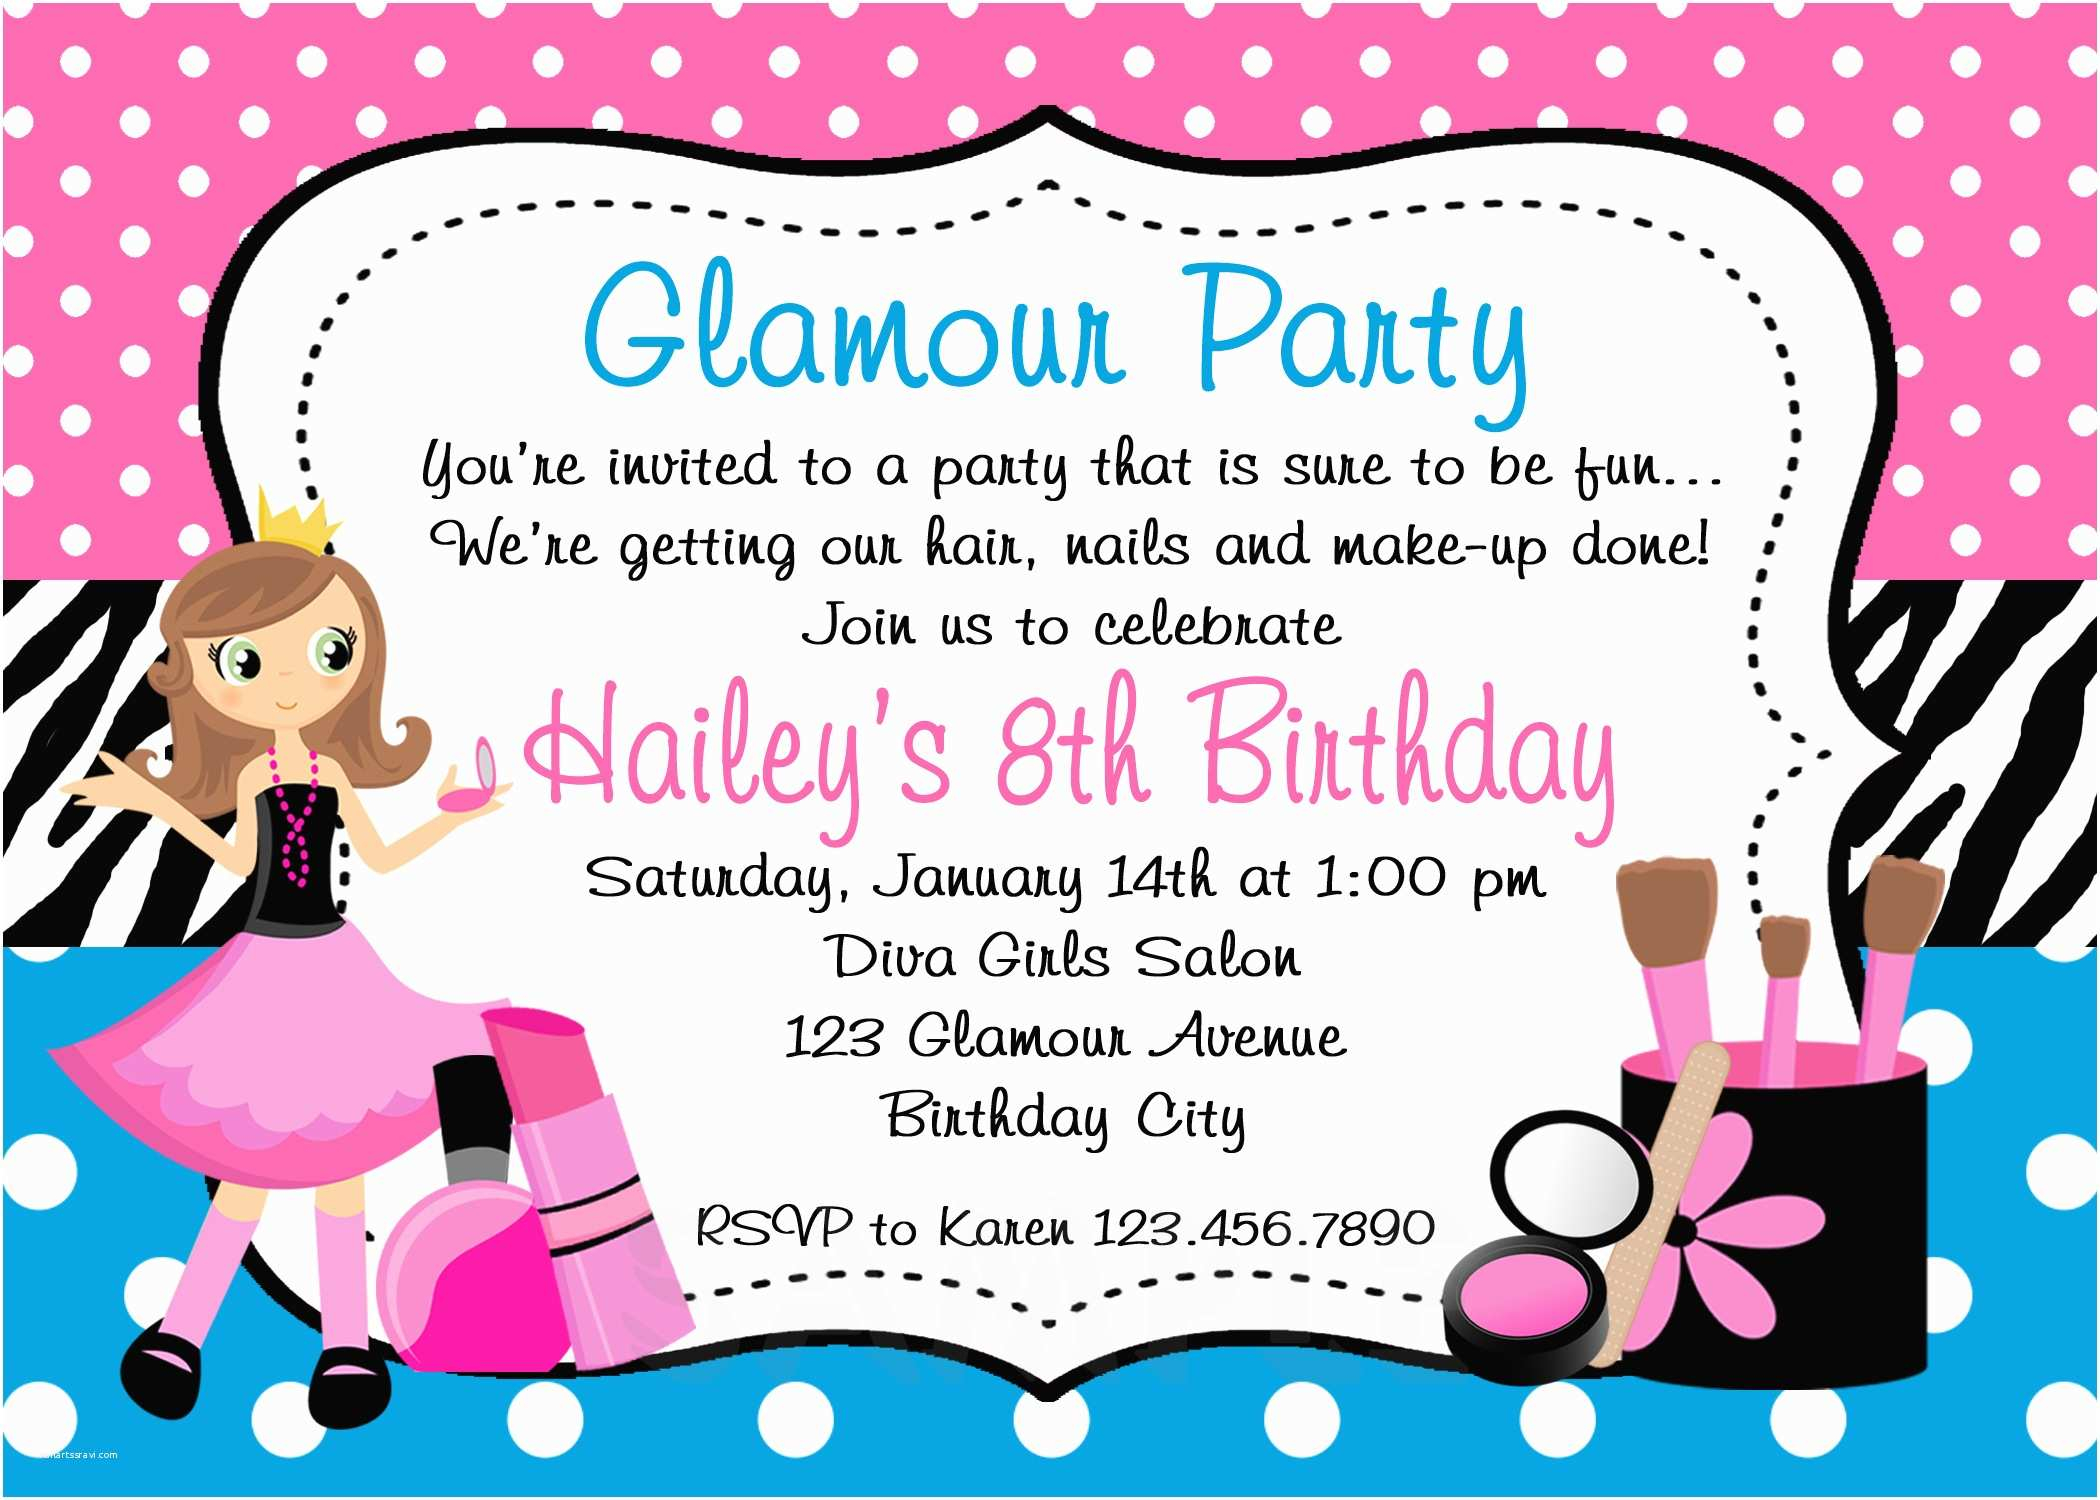 Girl Birthday Party Invitations Printable Birthday Invitations Girls Glamor Beauty Party